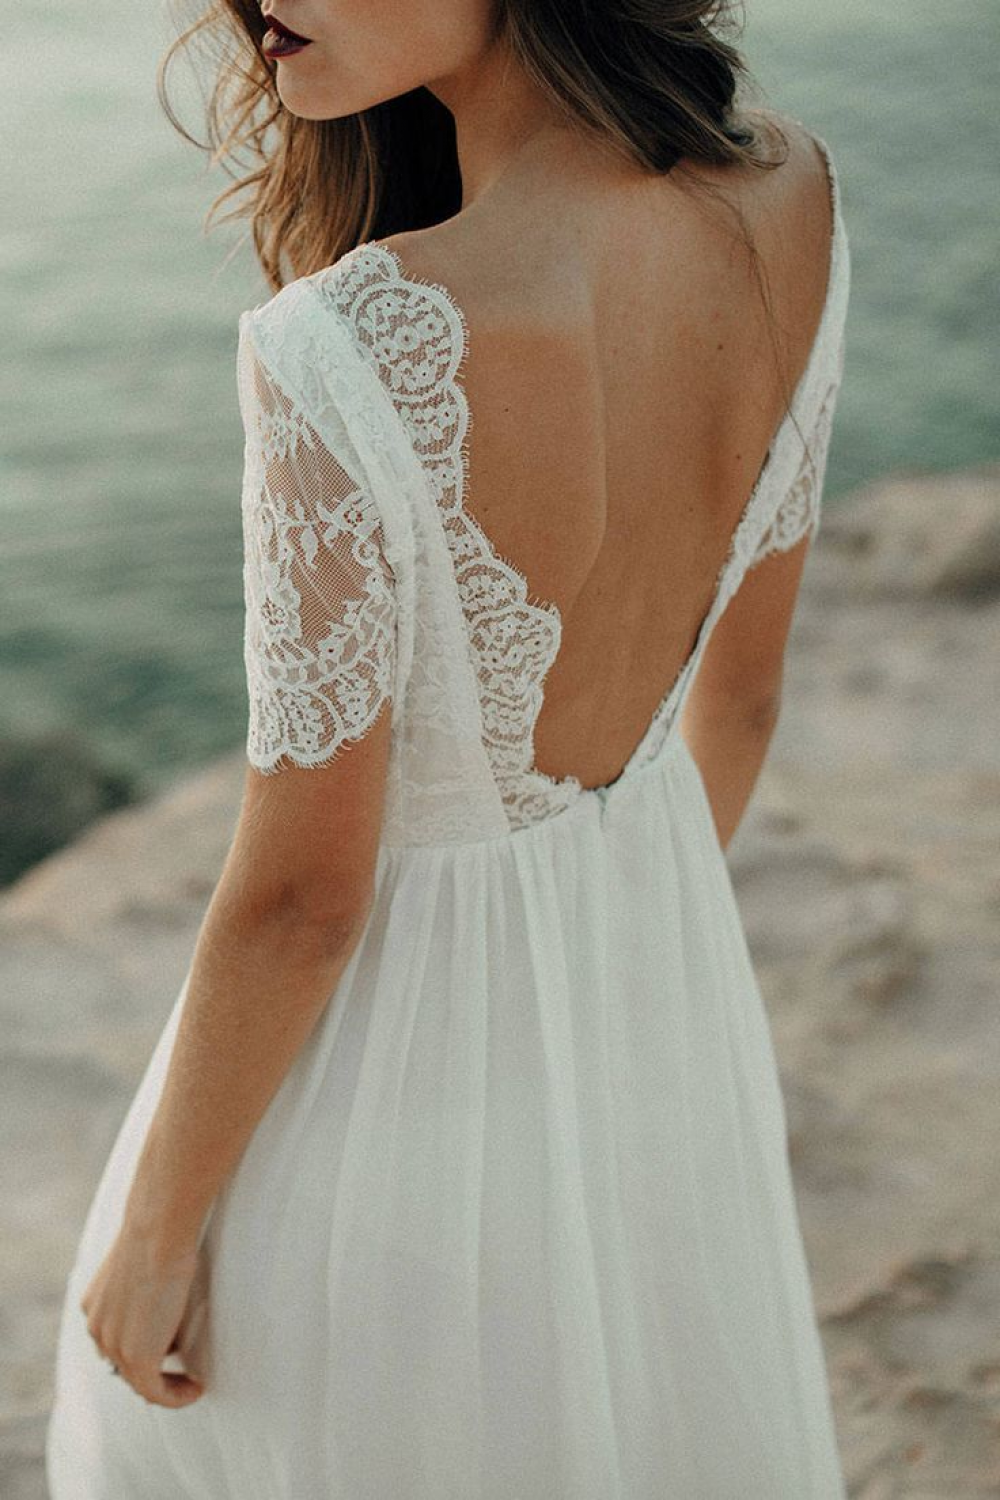 20 stylish wedding dress ideas you will fall in love